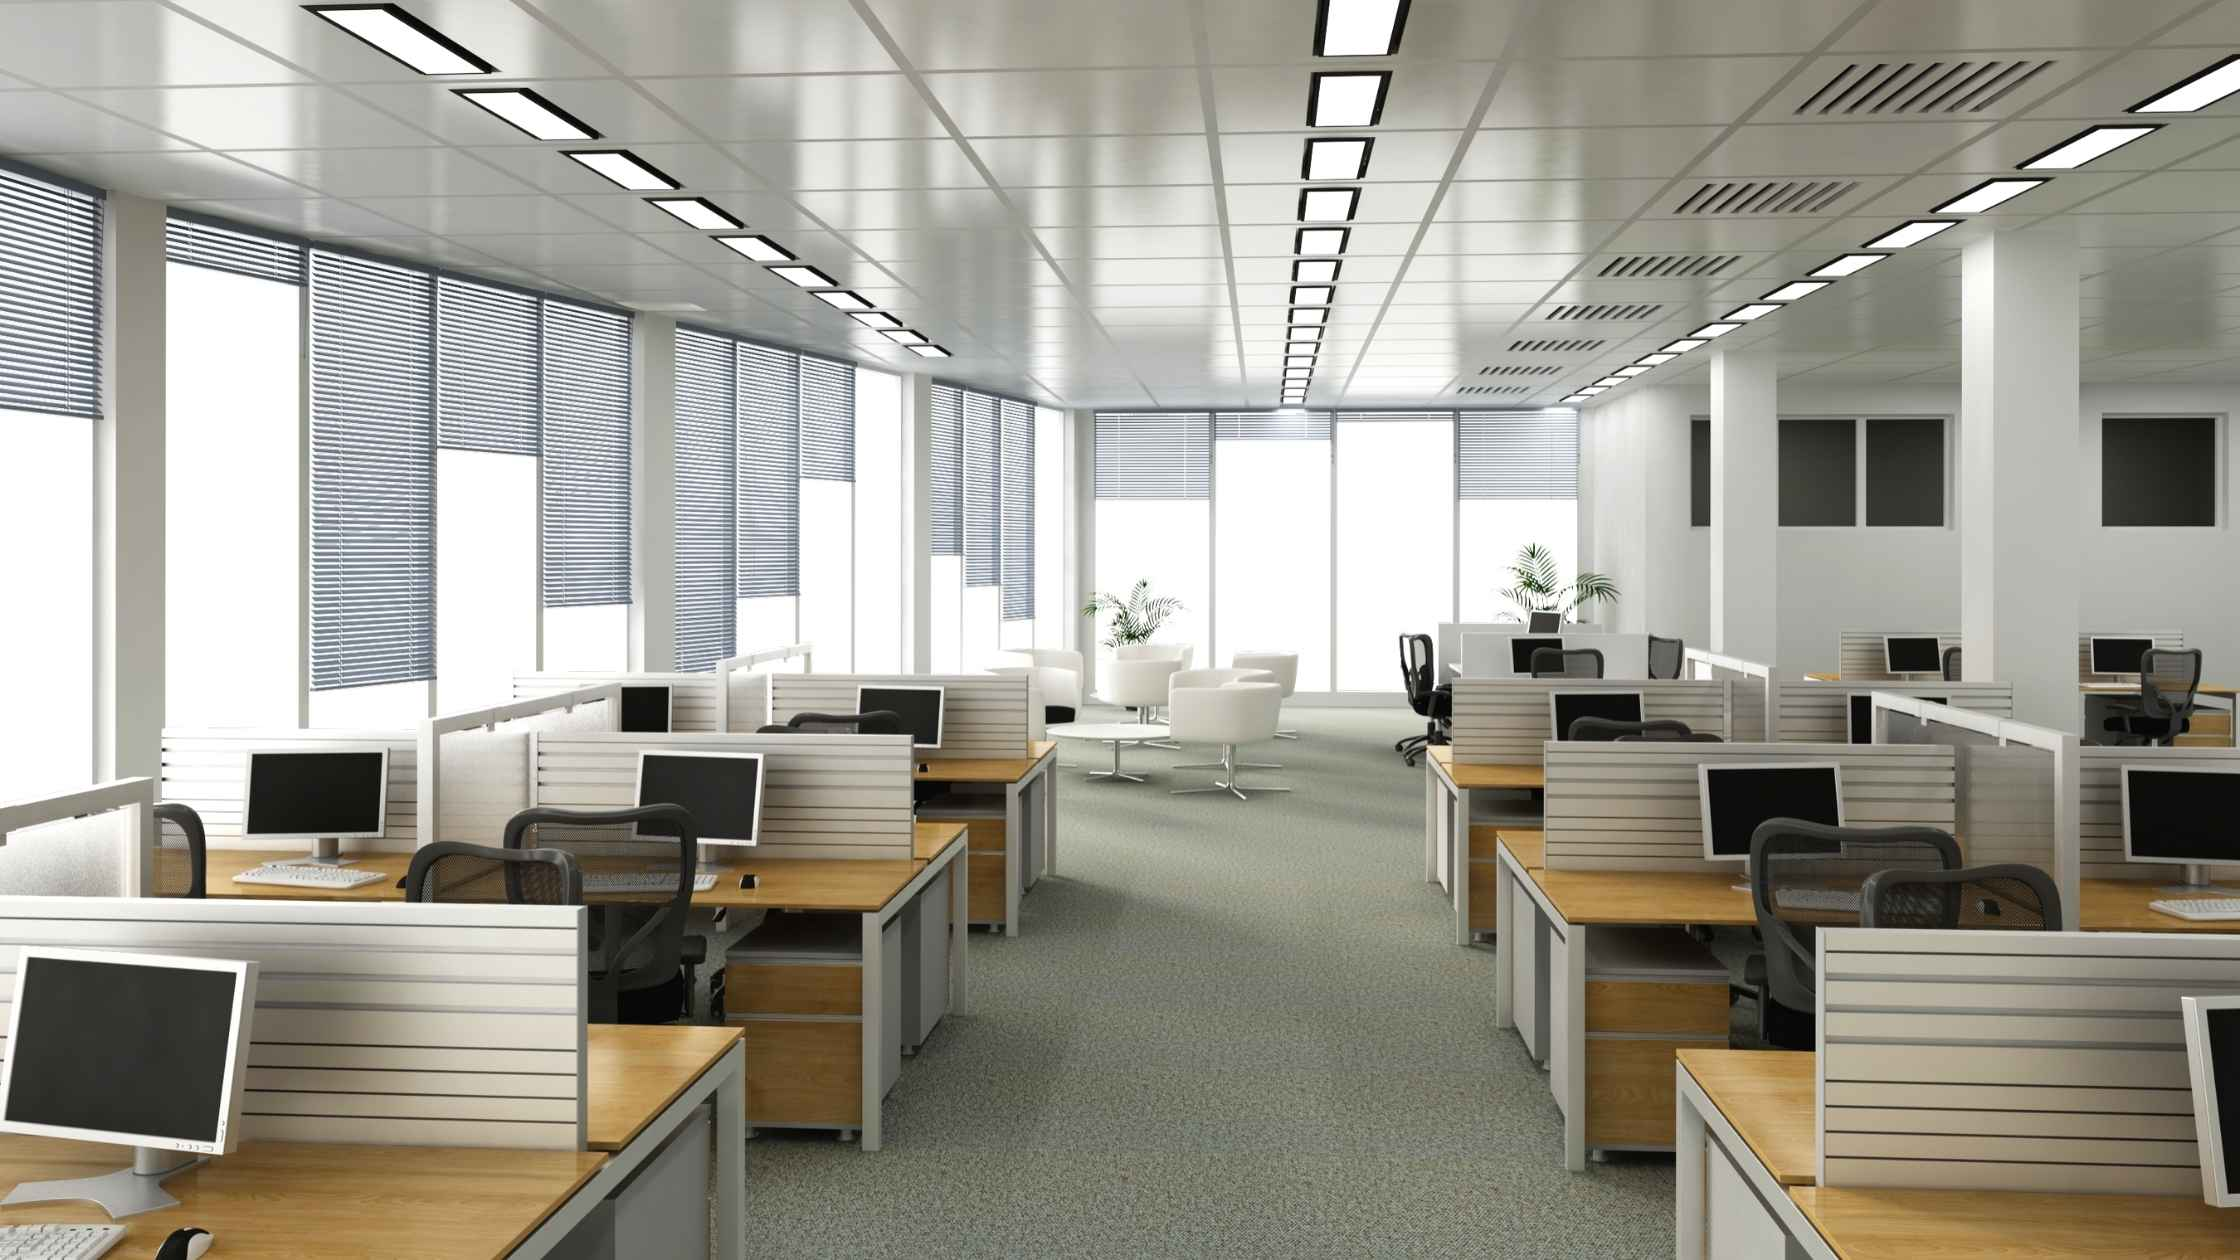 6 Office Renovation Tips for Successful Design